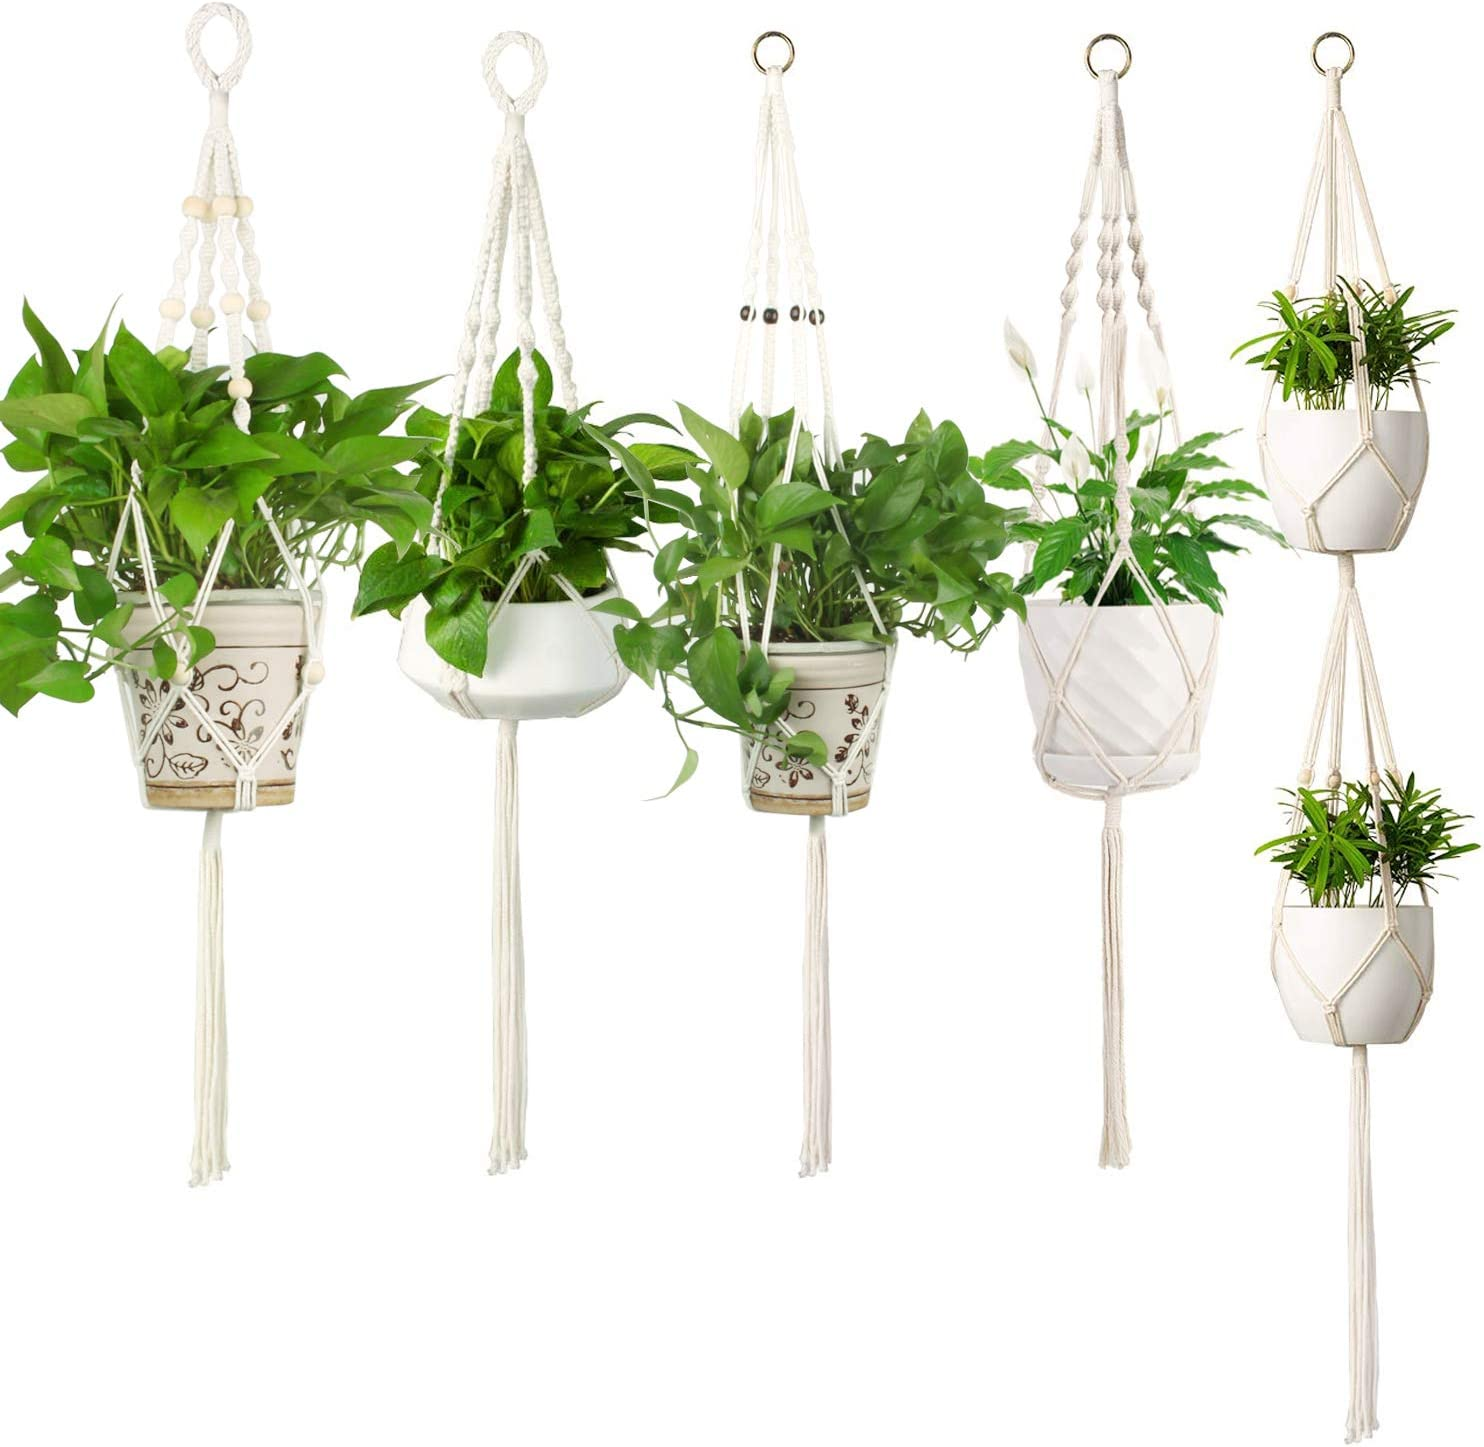 Hanging Plant Holder E-Know Macrame Plant Hanger 5 Pack Hanging Planter/Indoor Outdoor Handmade Cotton Rope